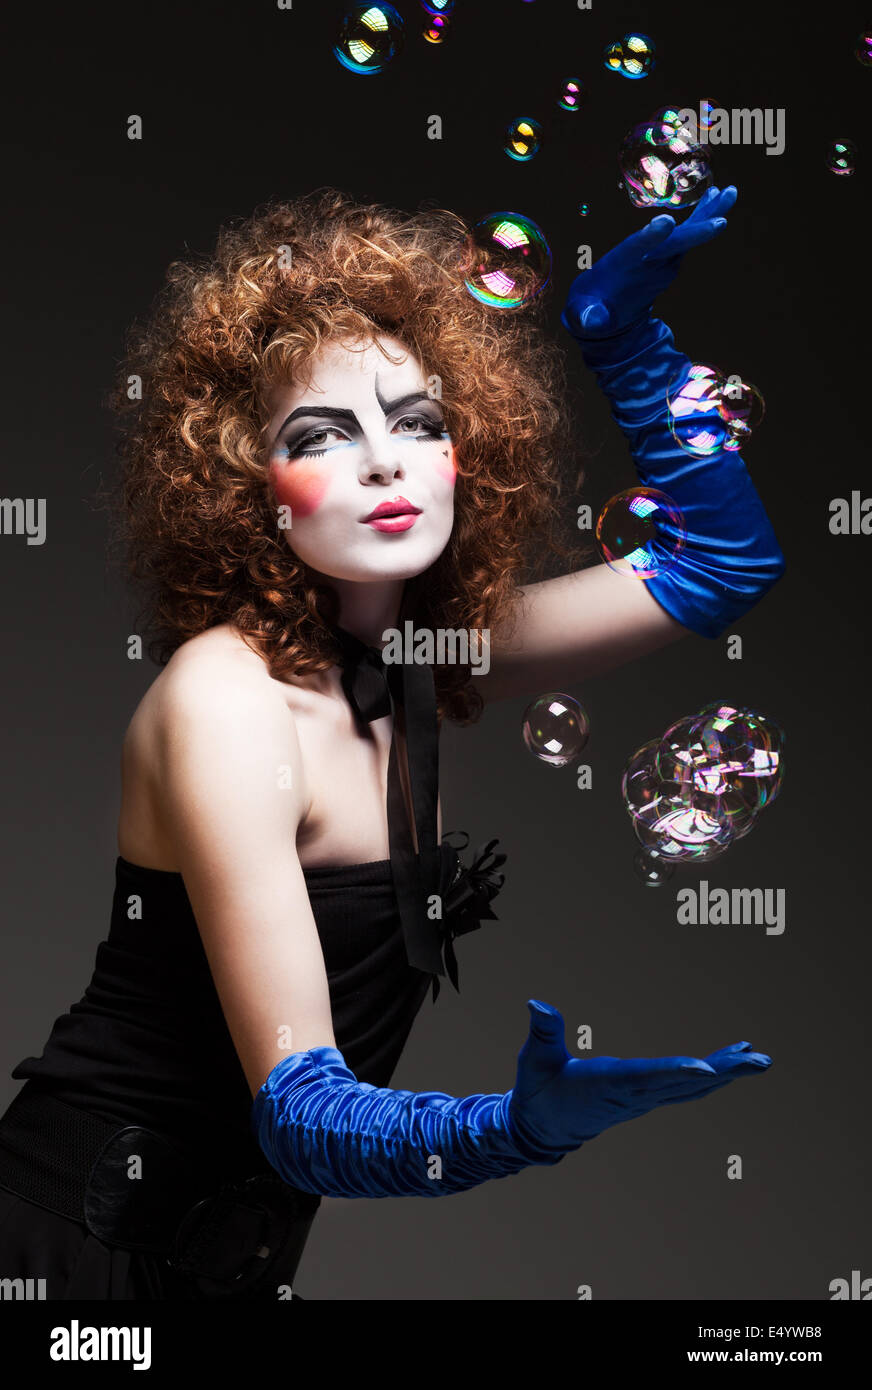 woman mime with soap bubbles. - Stock Image